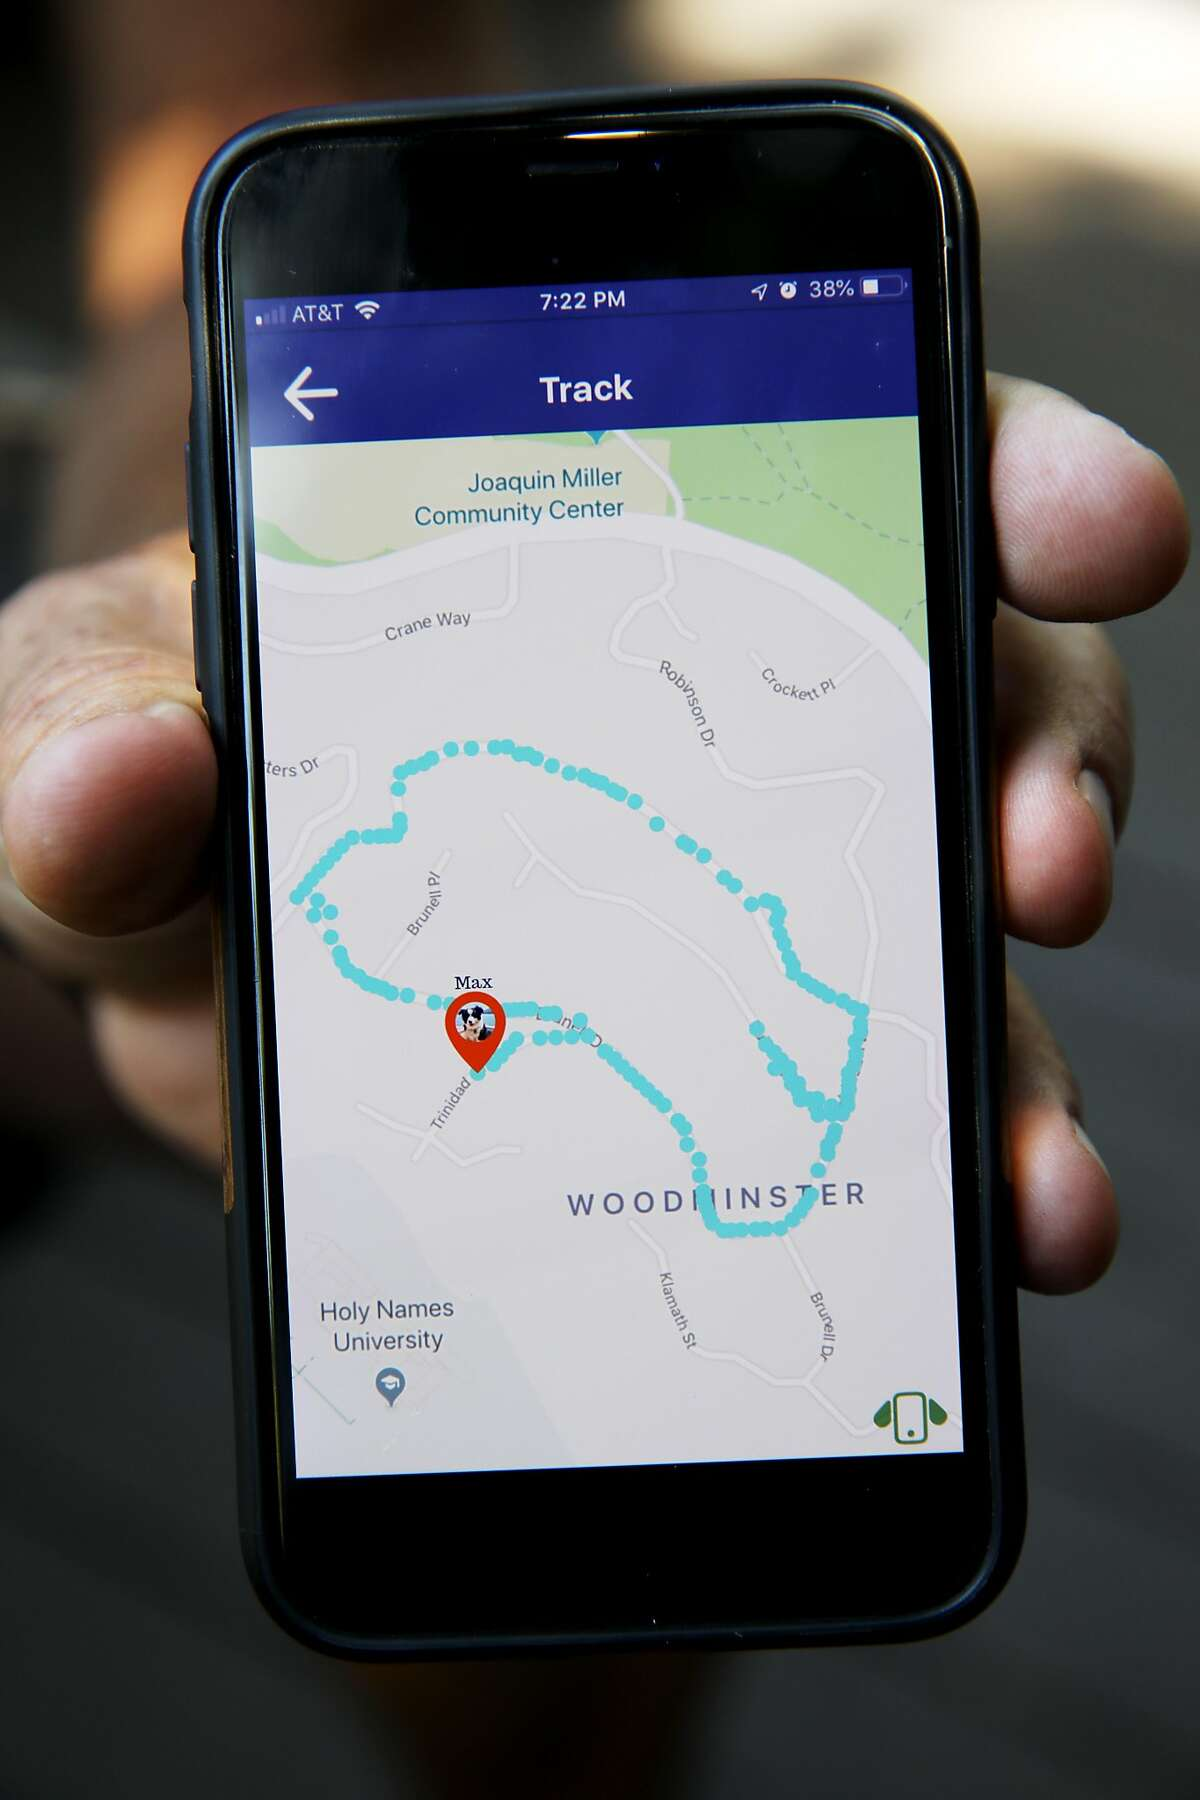 Gregory Gotts shows Max's, his border collie, route on the InvisiLeach app in Oakland, Calif., on Tuesday, June 11, 2019. Gotts has invented InvisiLeash, a small electronic device to attach to a dog or cat collar that allows the owner to track the animal's whereabouts.